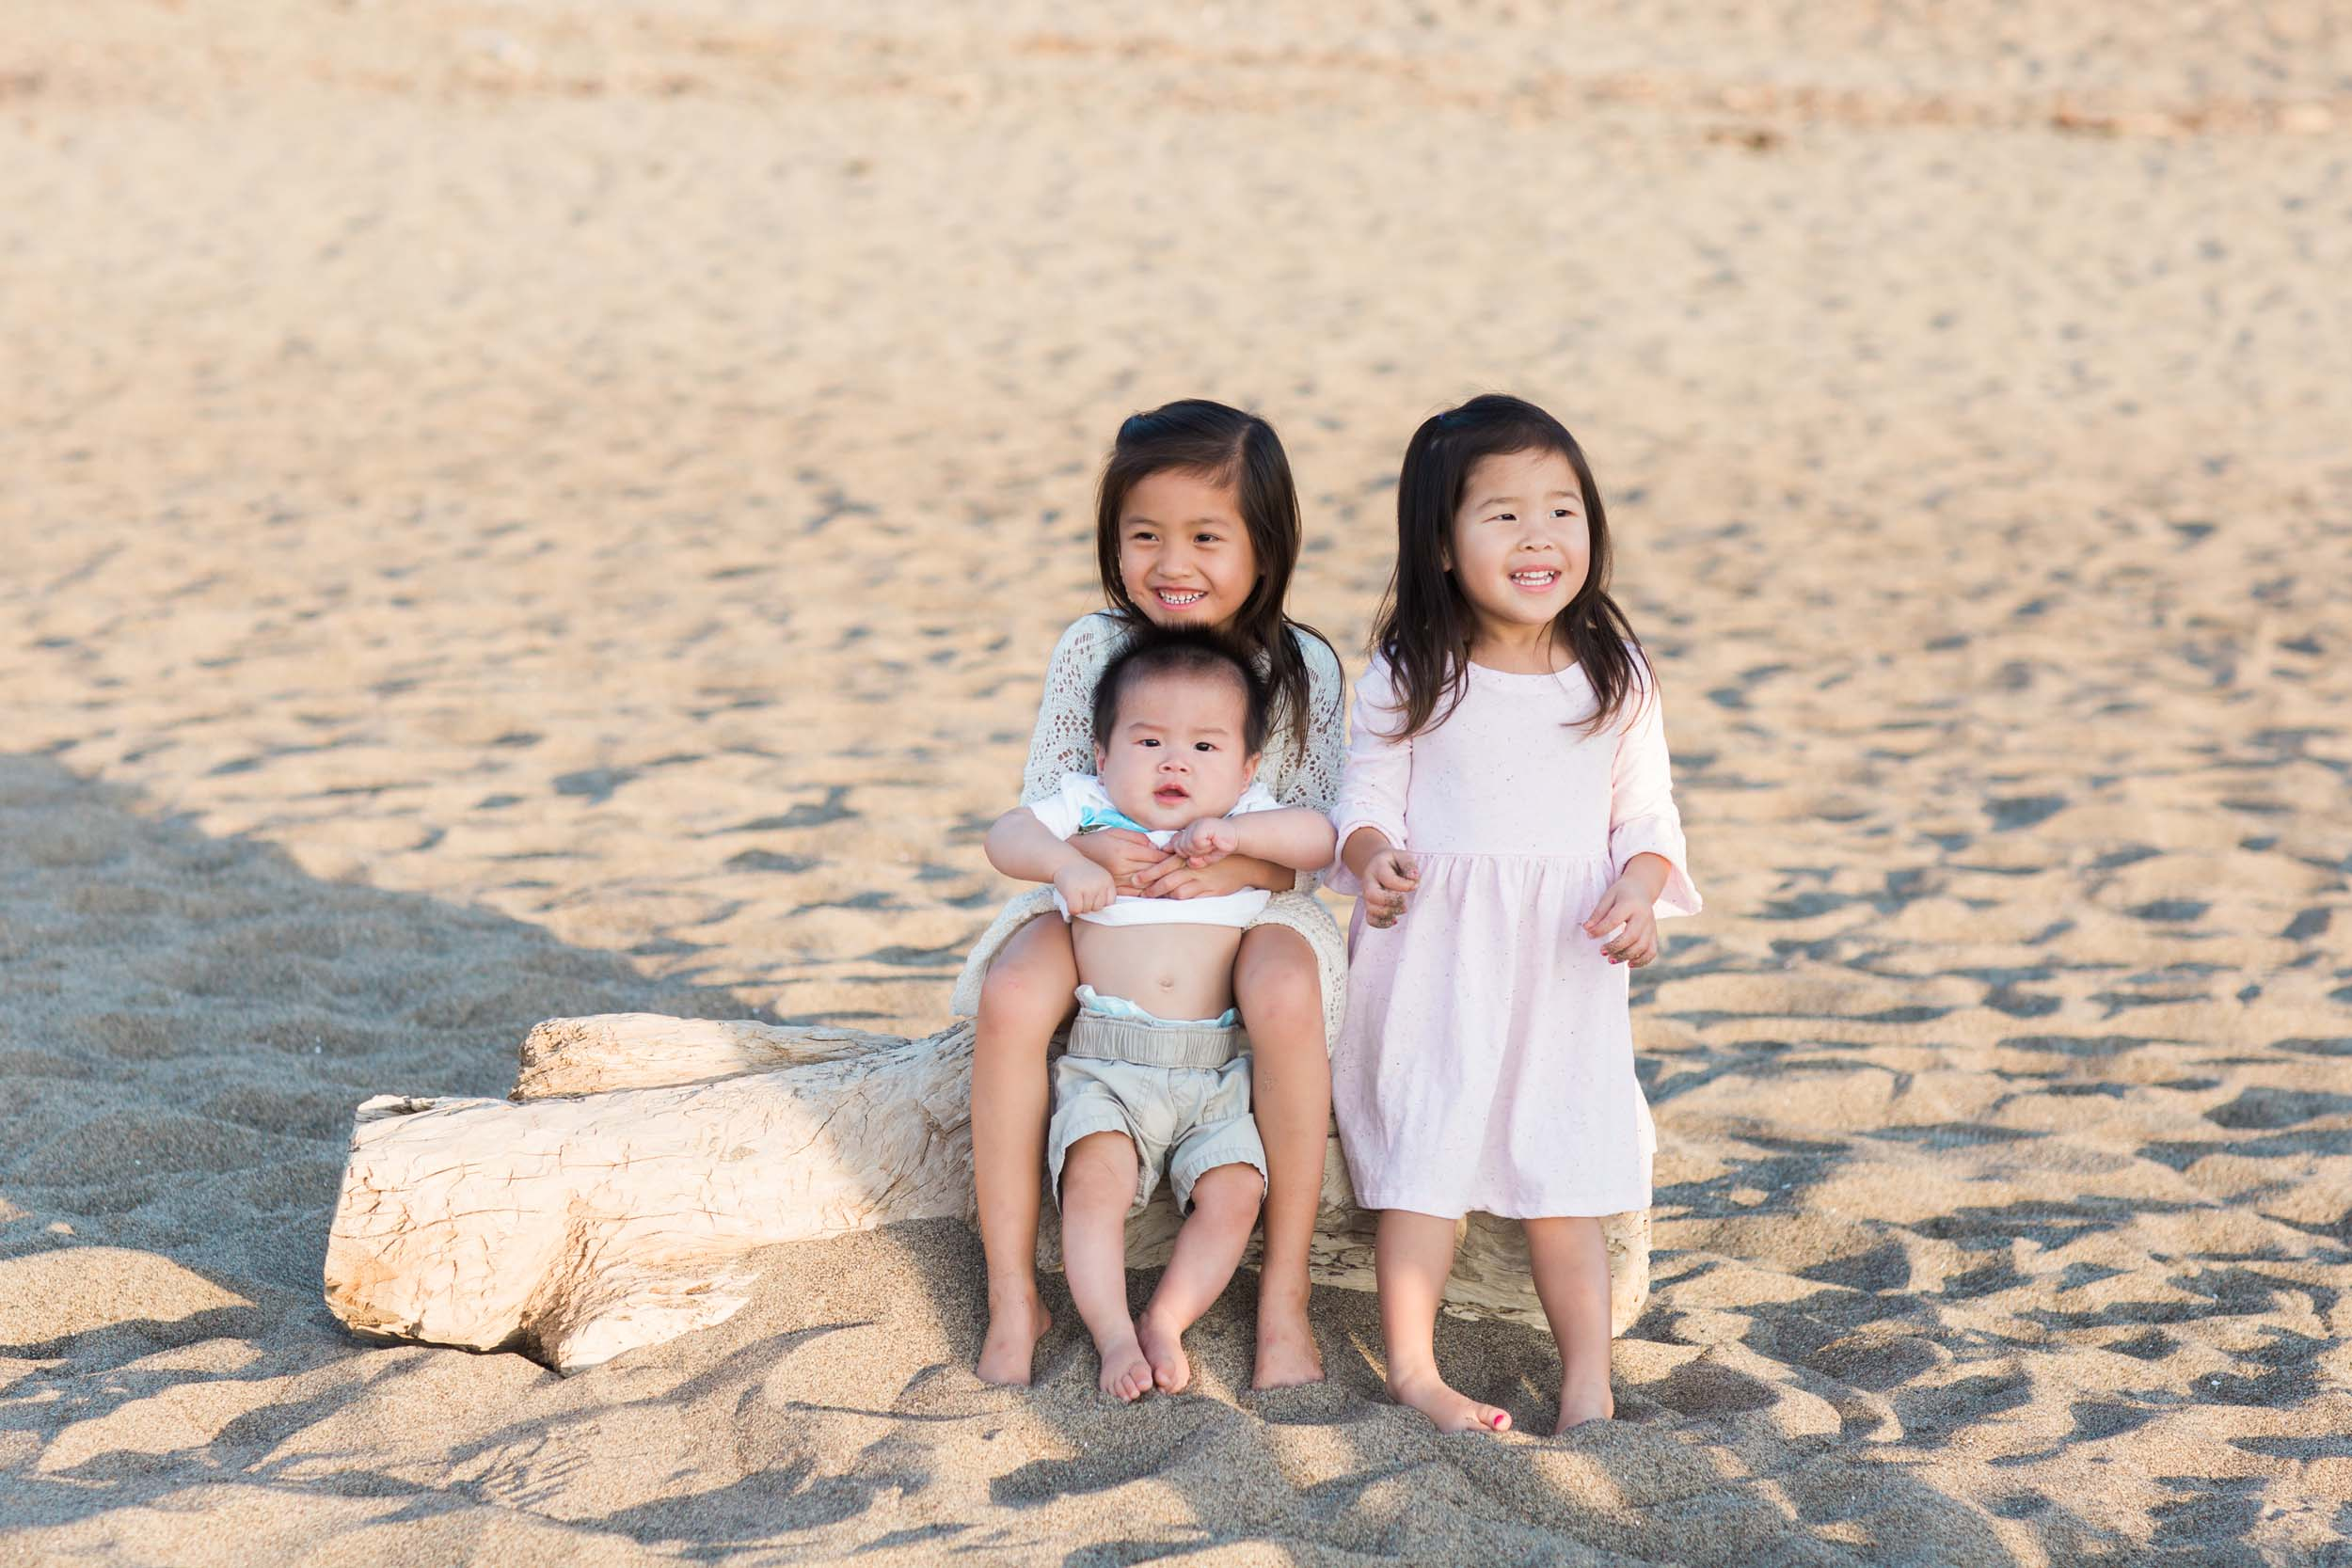 Three children hug and smile on a beach in San Francisco.